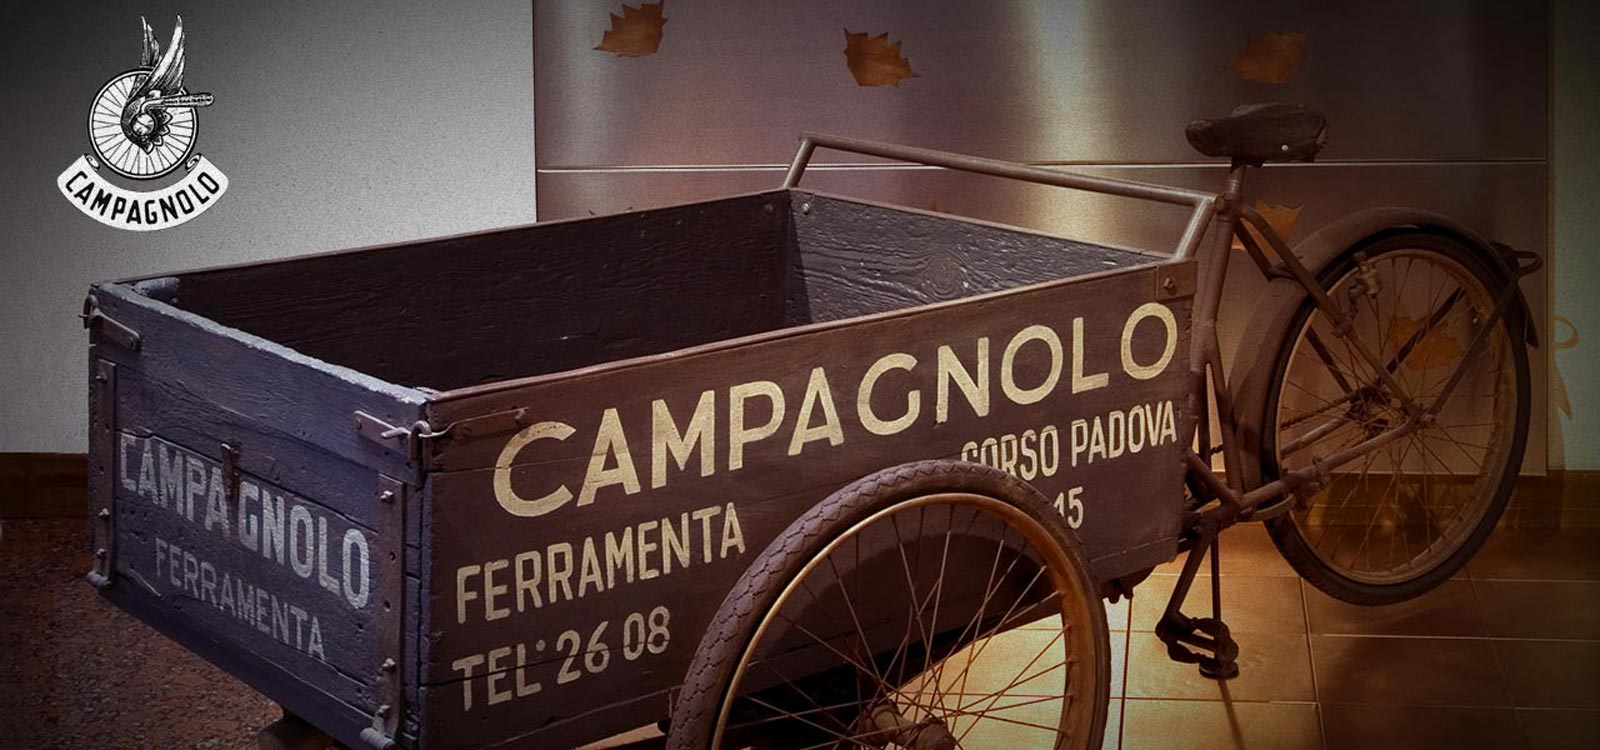 Campagnolo Srl - corporate info - about us